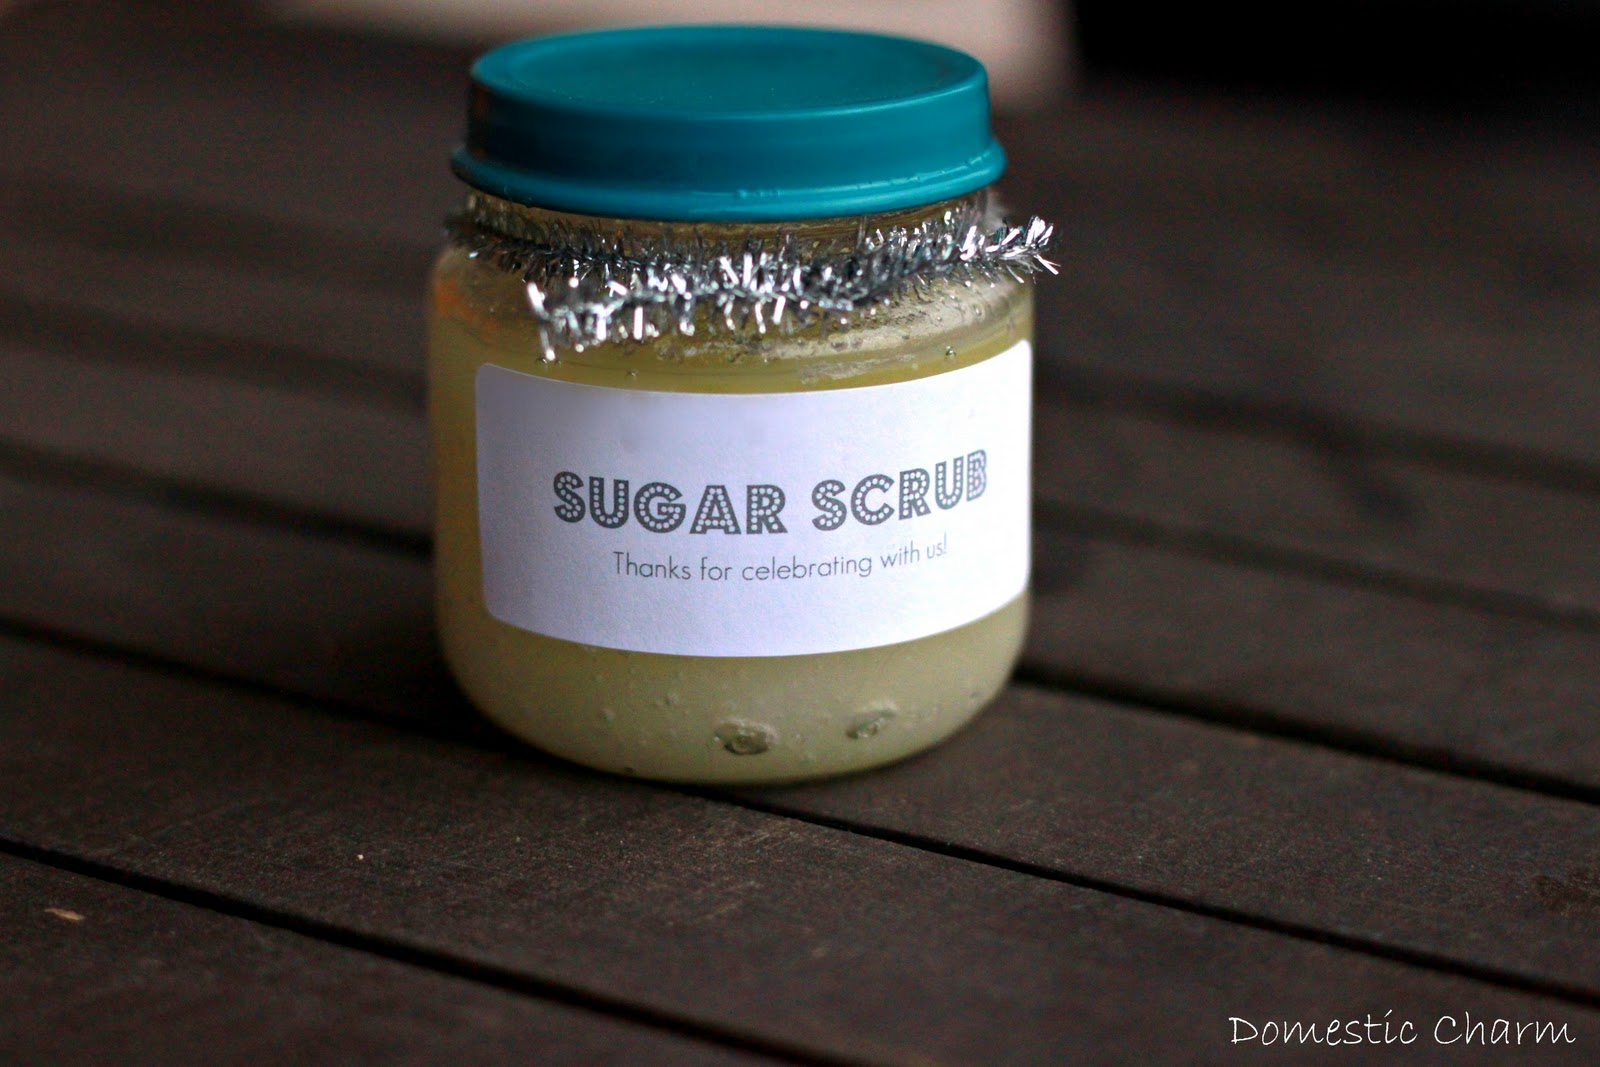 Sugar Scrub In Baby Food Jars